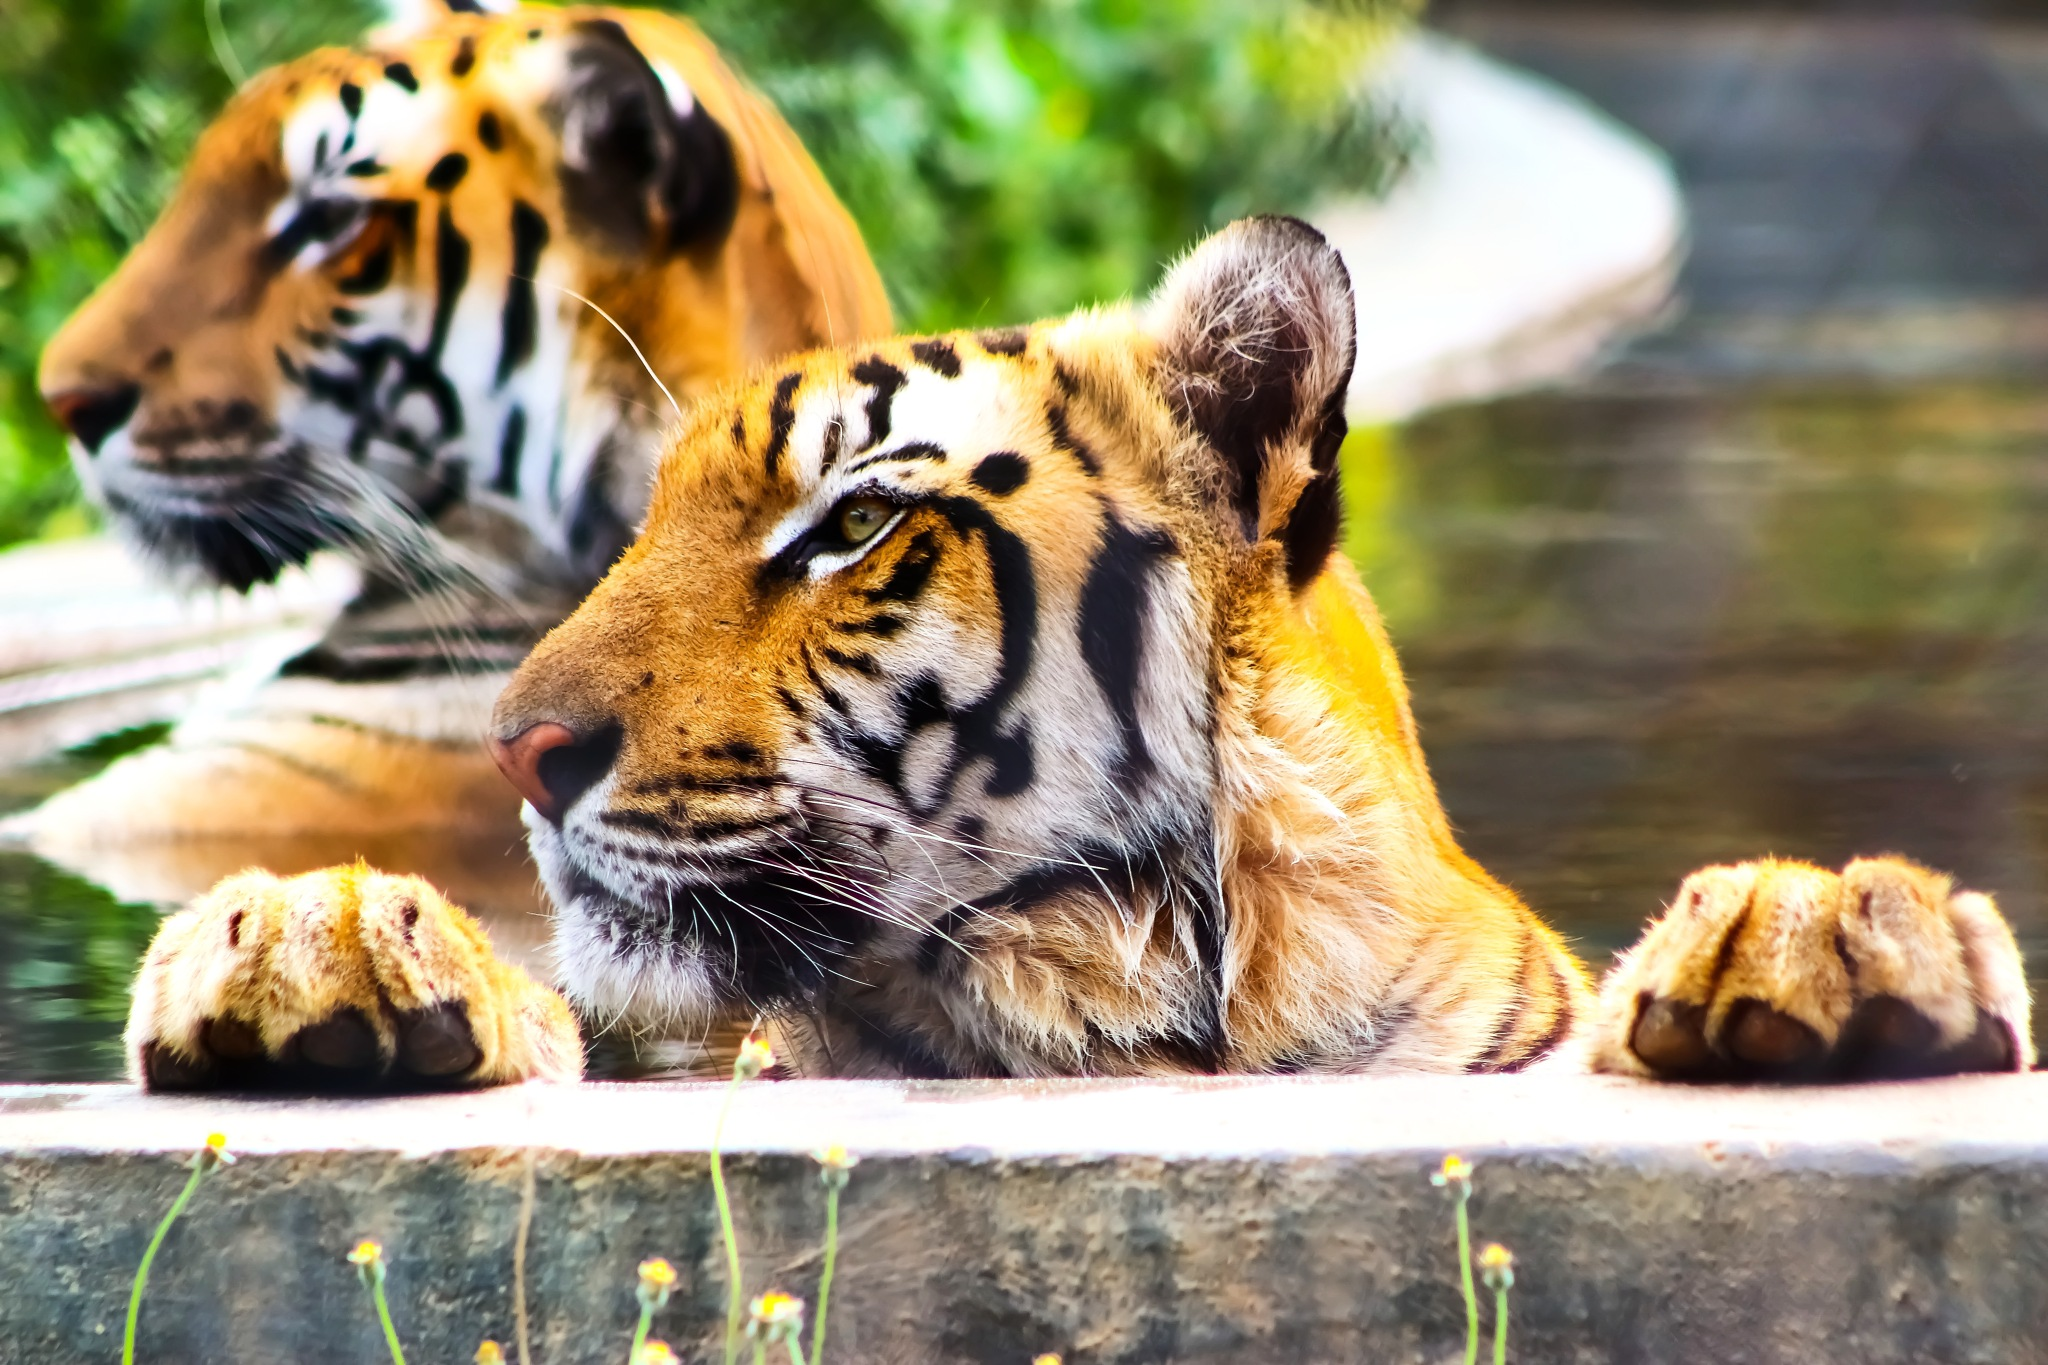 No Kingdom without the King - SAVE TIGERS by Remo G J